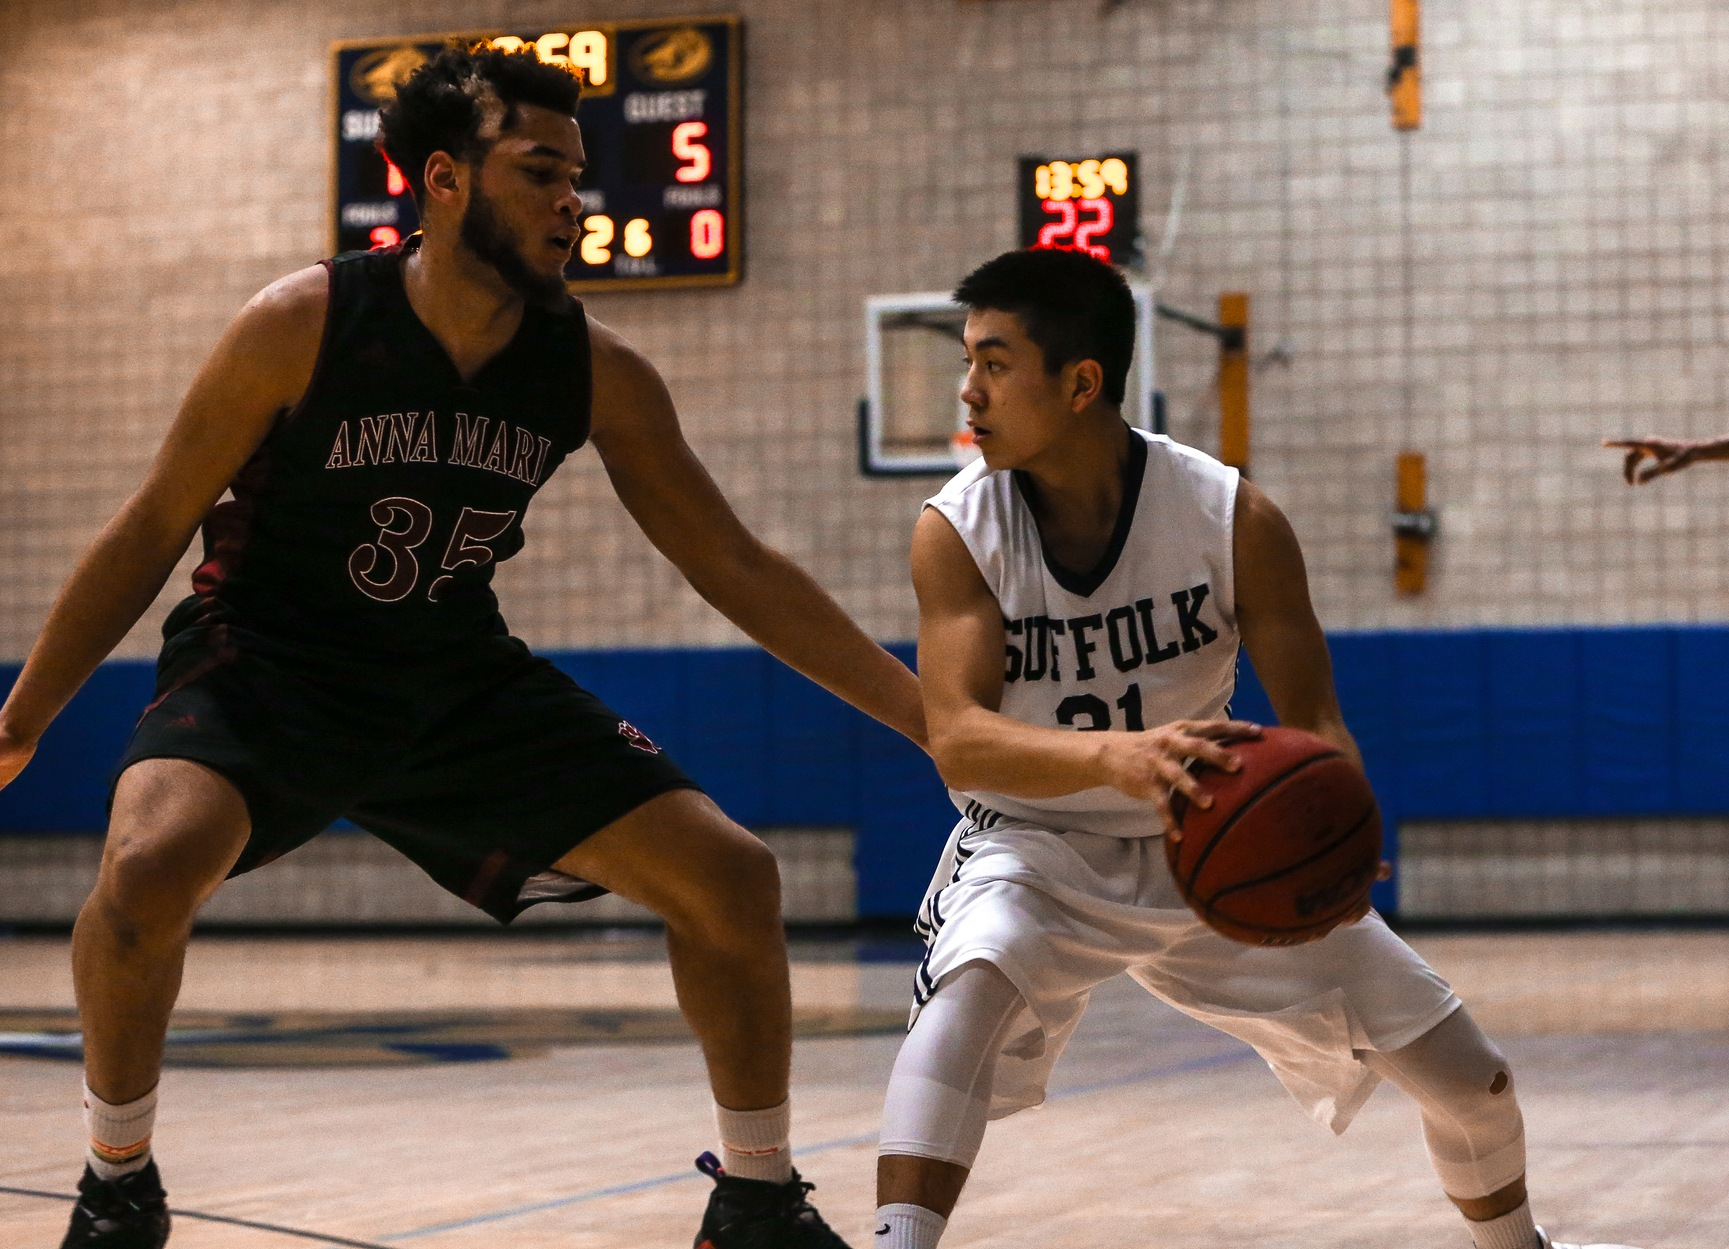 Men's Basketball Heads to Anna Maria Tuesday